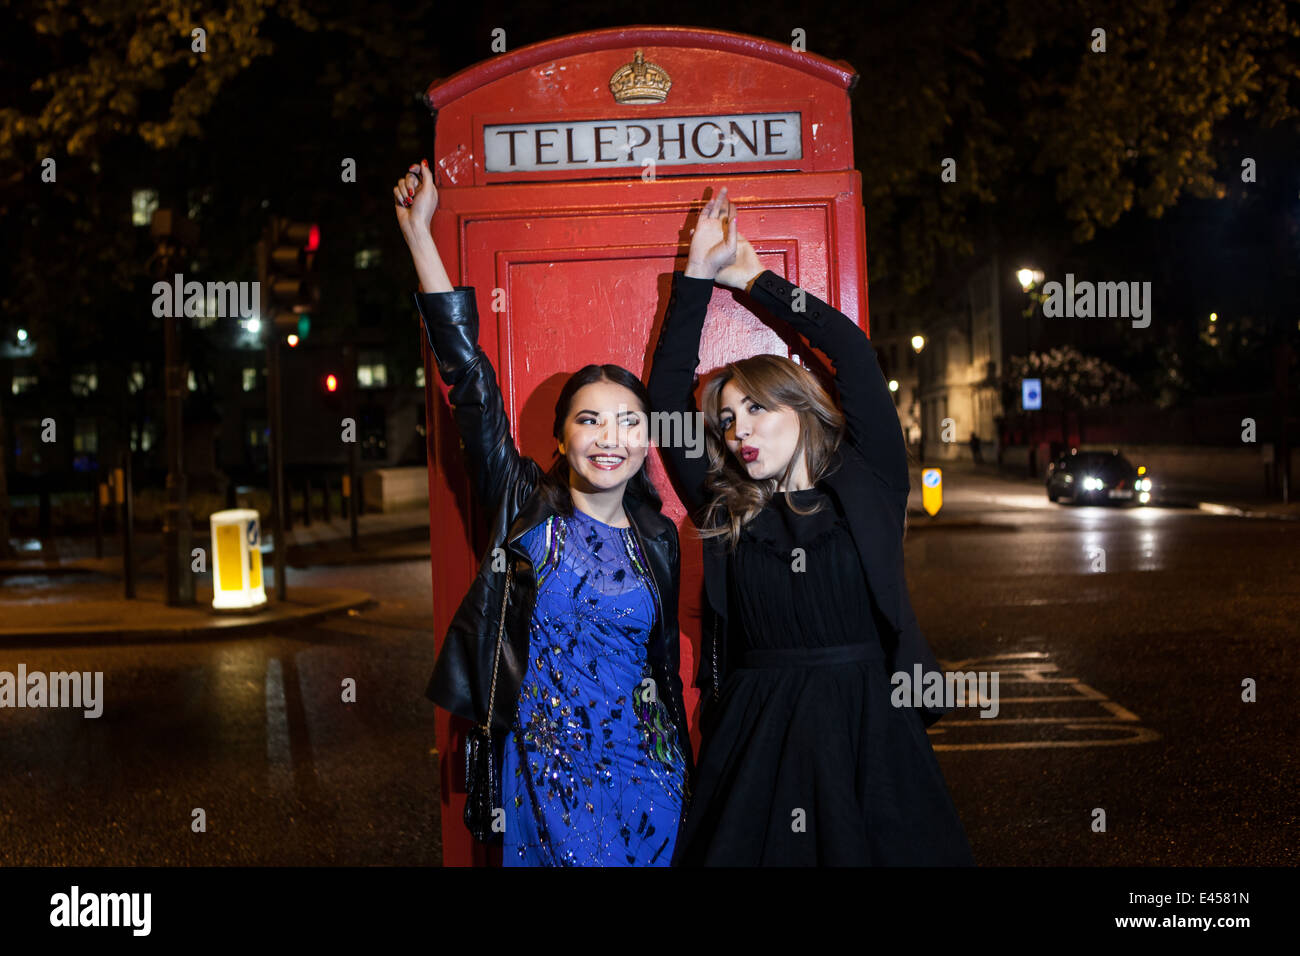 Two young female friends dancing in front of red phone box at night, London, UK - Stock Image